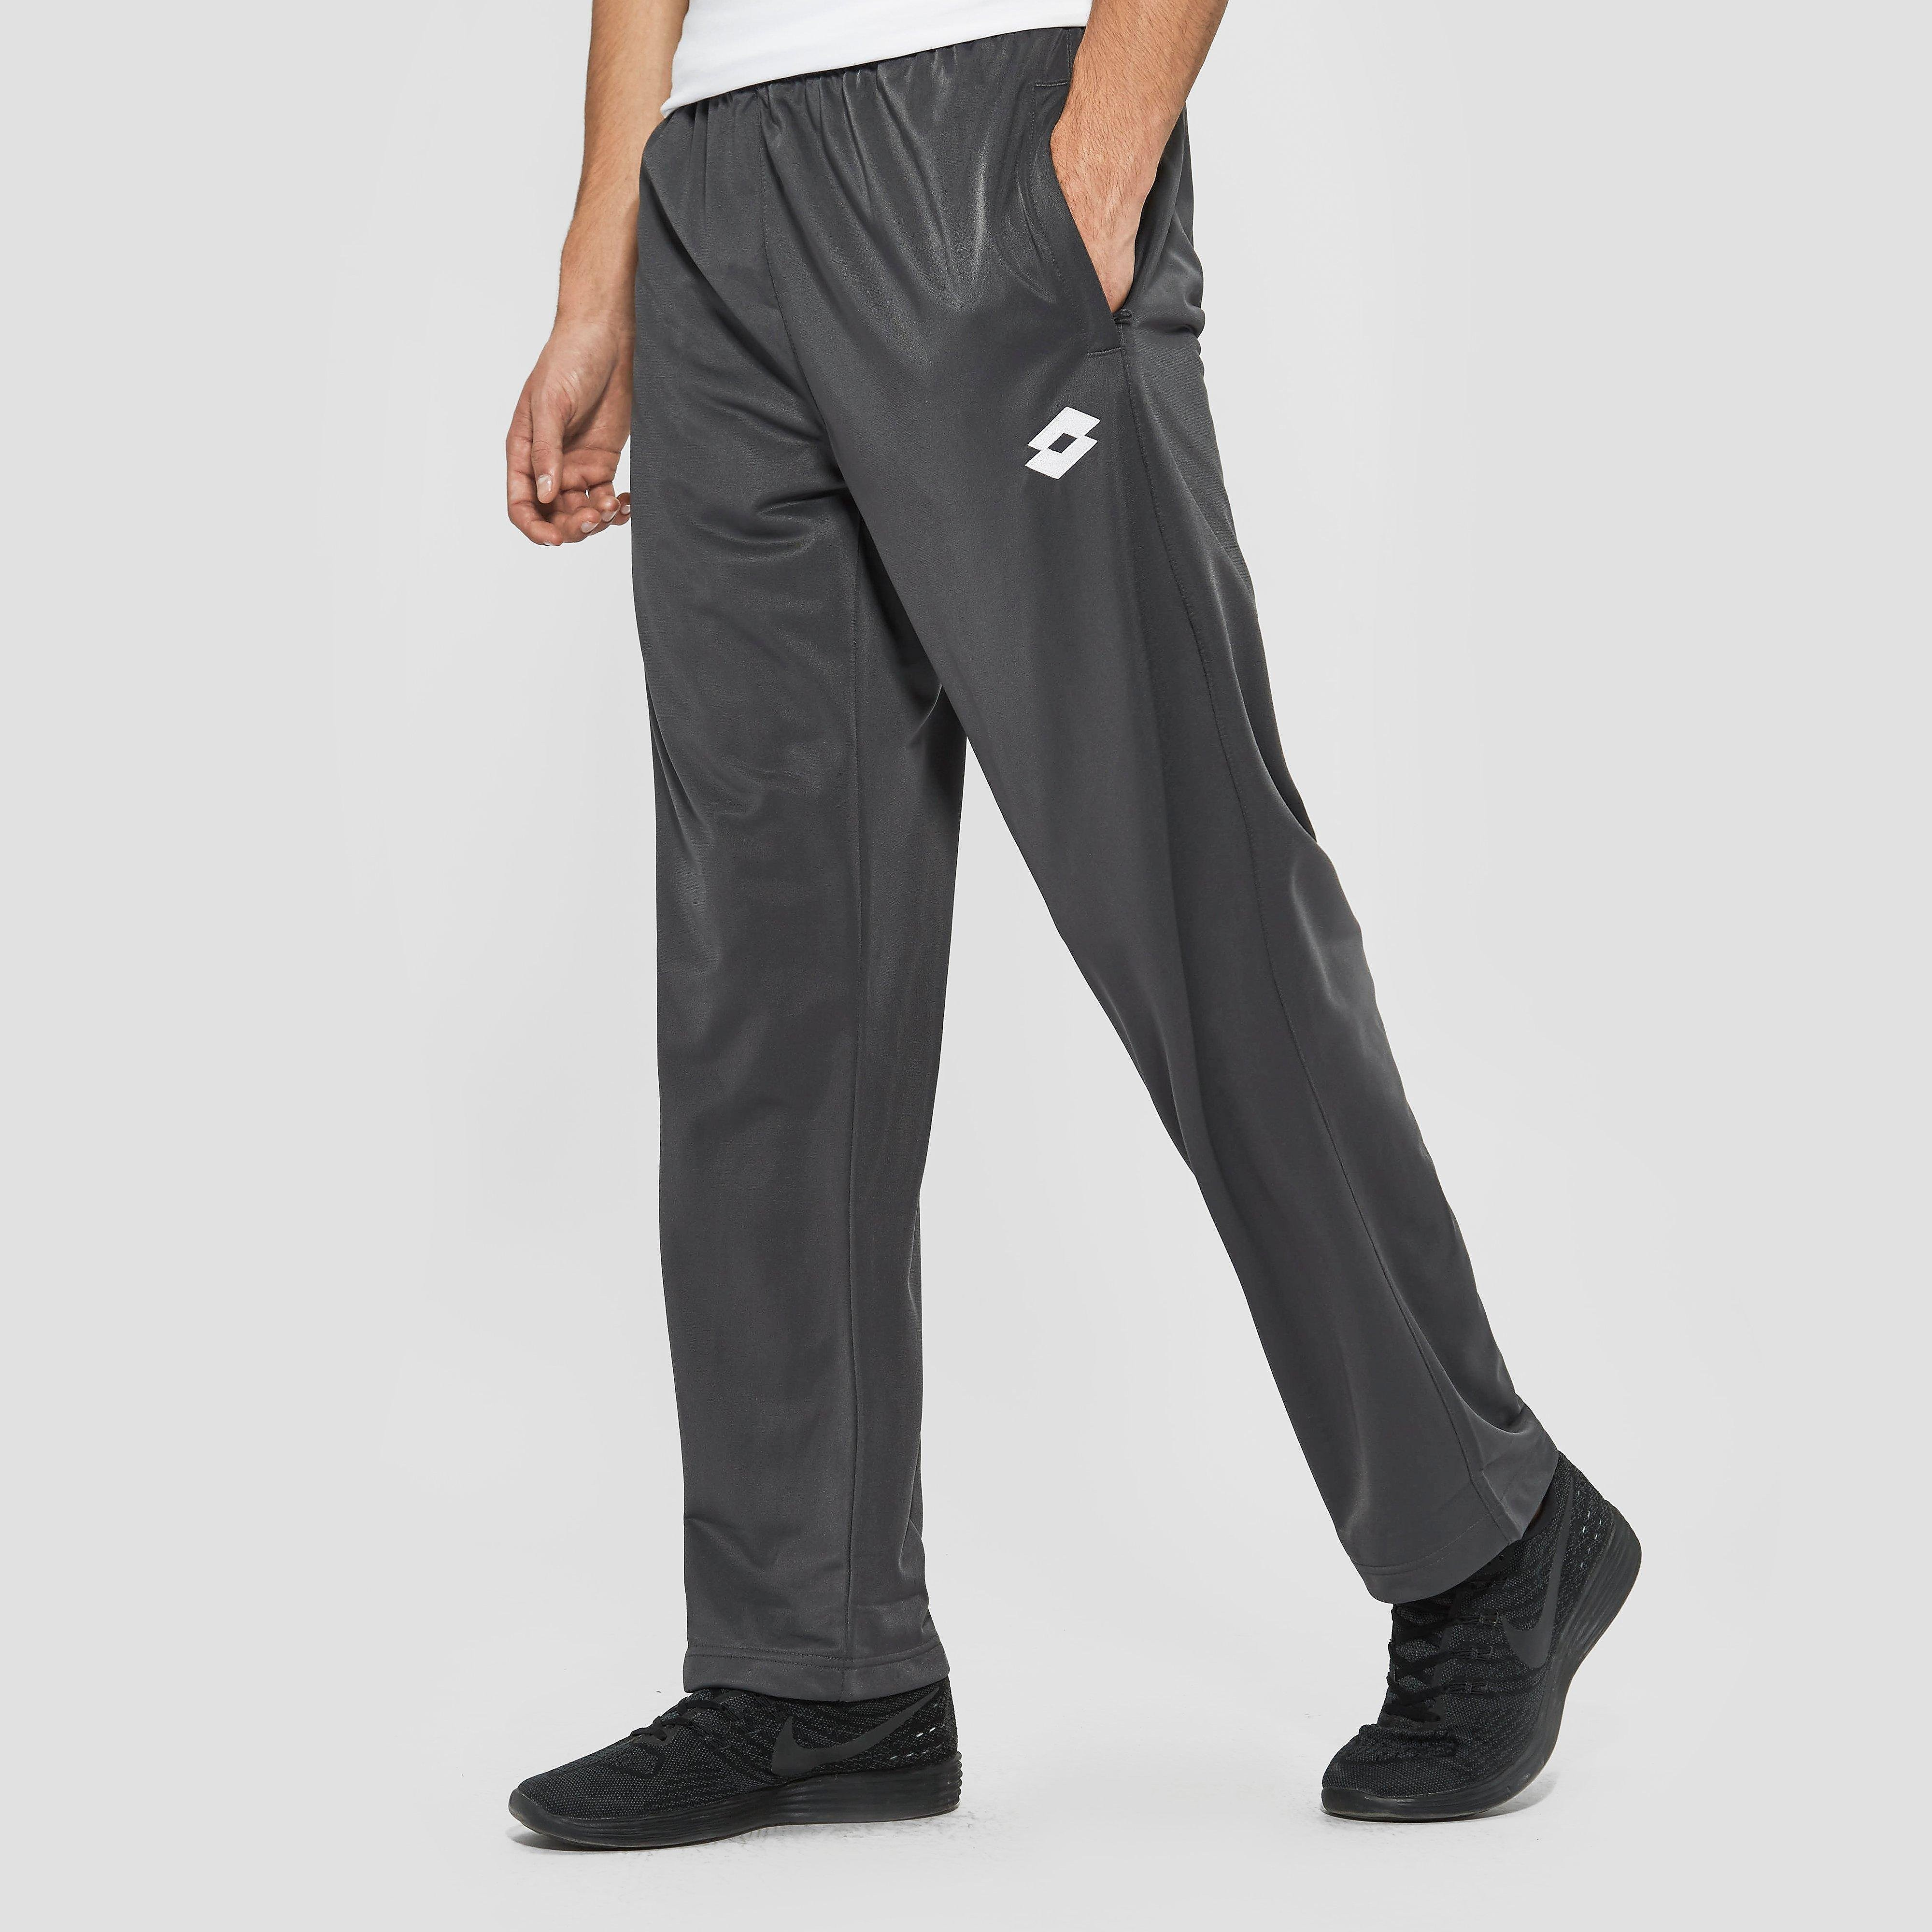 Lotto GERRY PES PANT